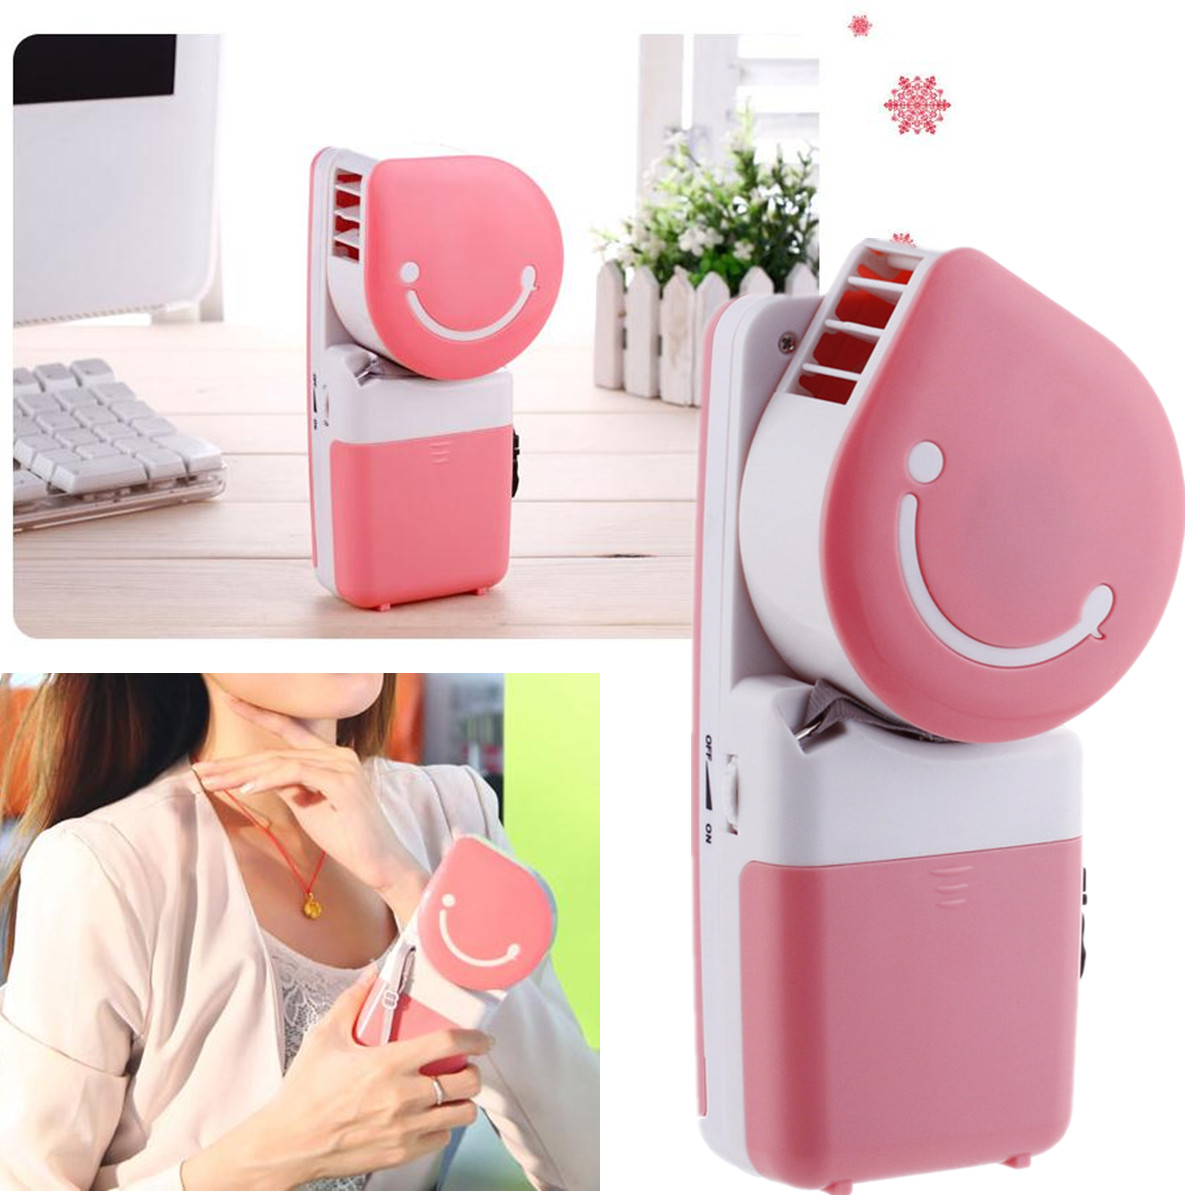 of USB Portable Hand Held Air Conditioner Cooler Cooling Fan (Pink #9D522E